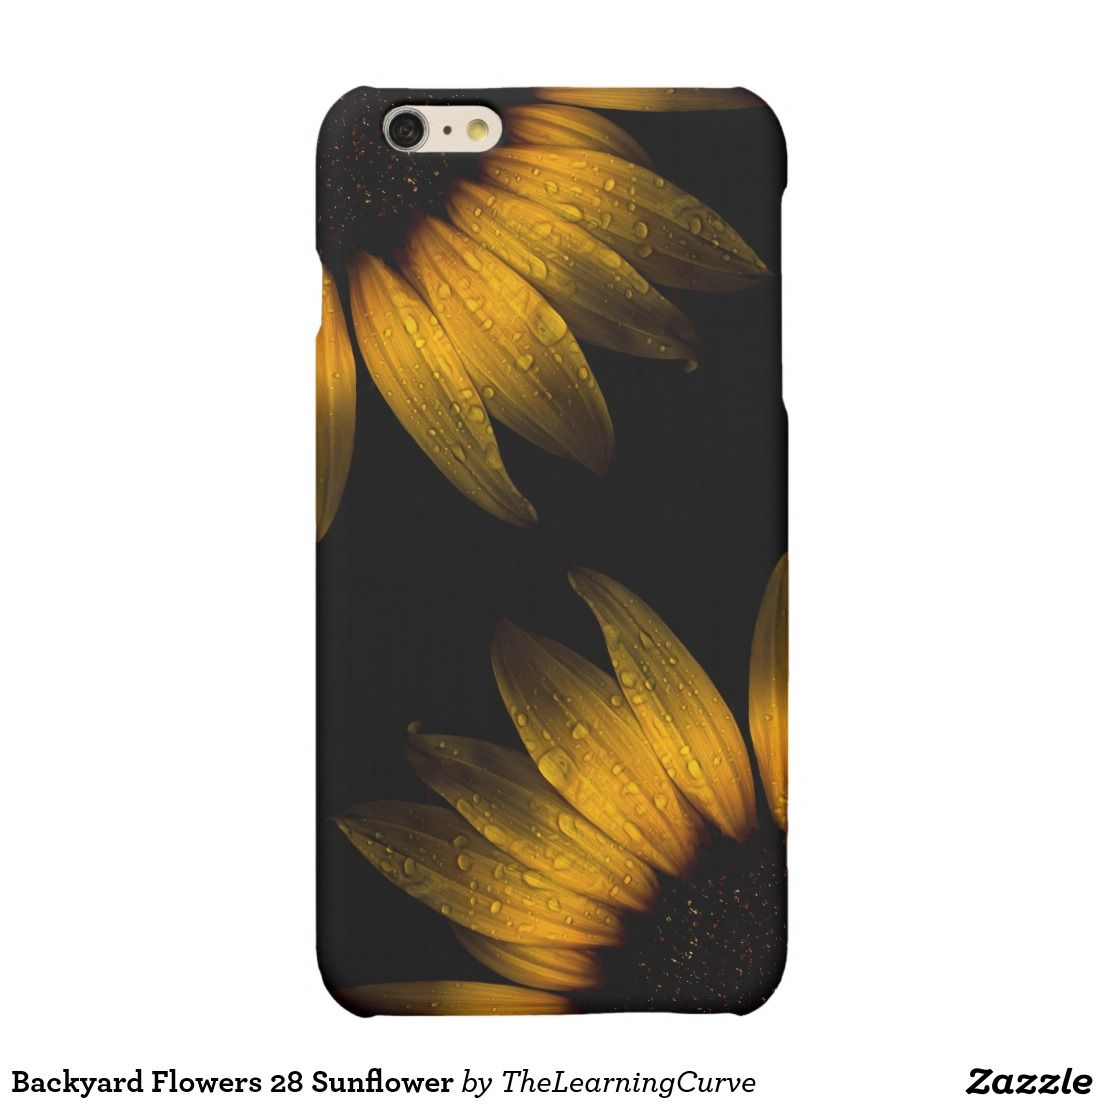 backyard flowers 28 sunflower iphone 6 plus case flower